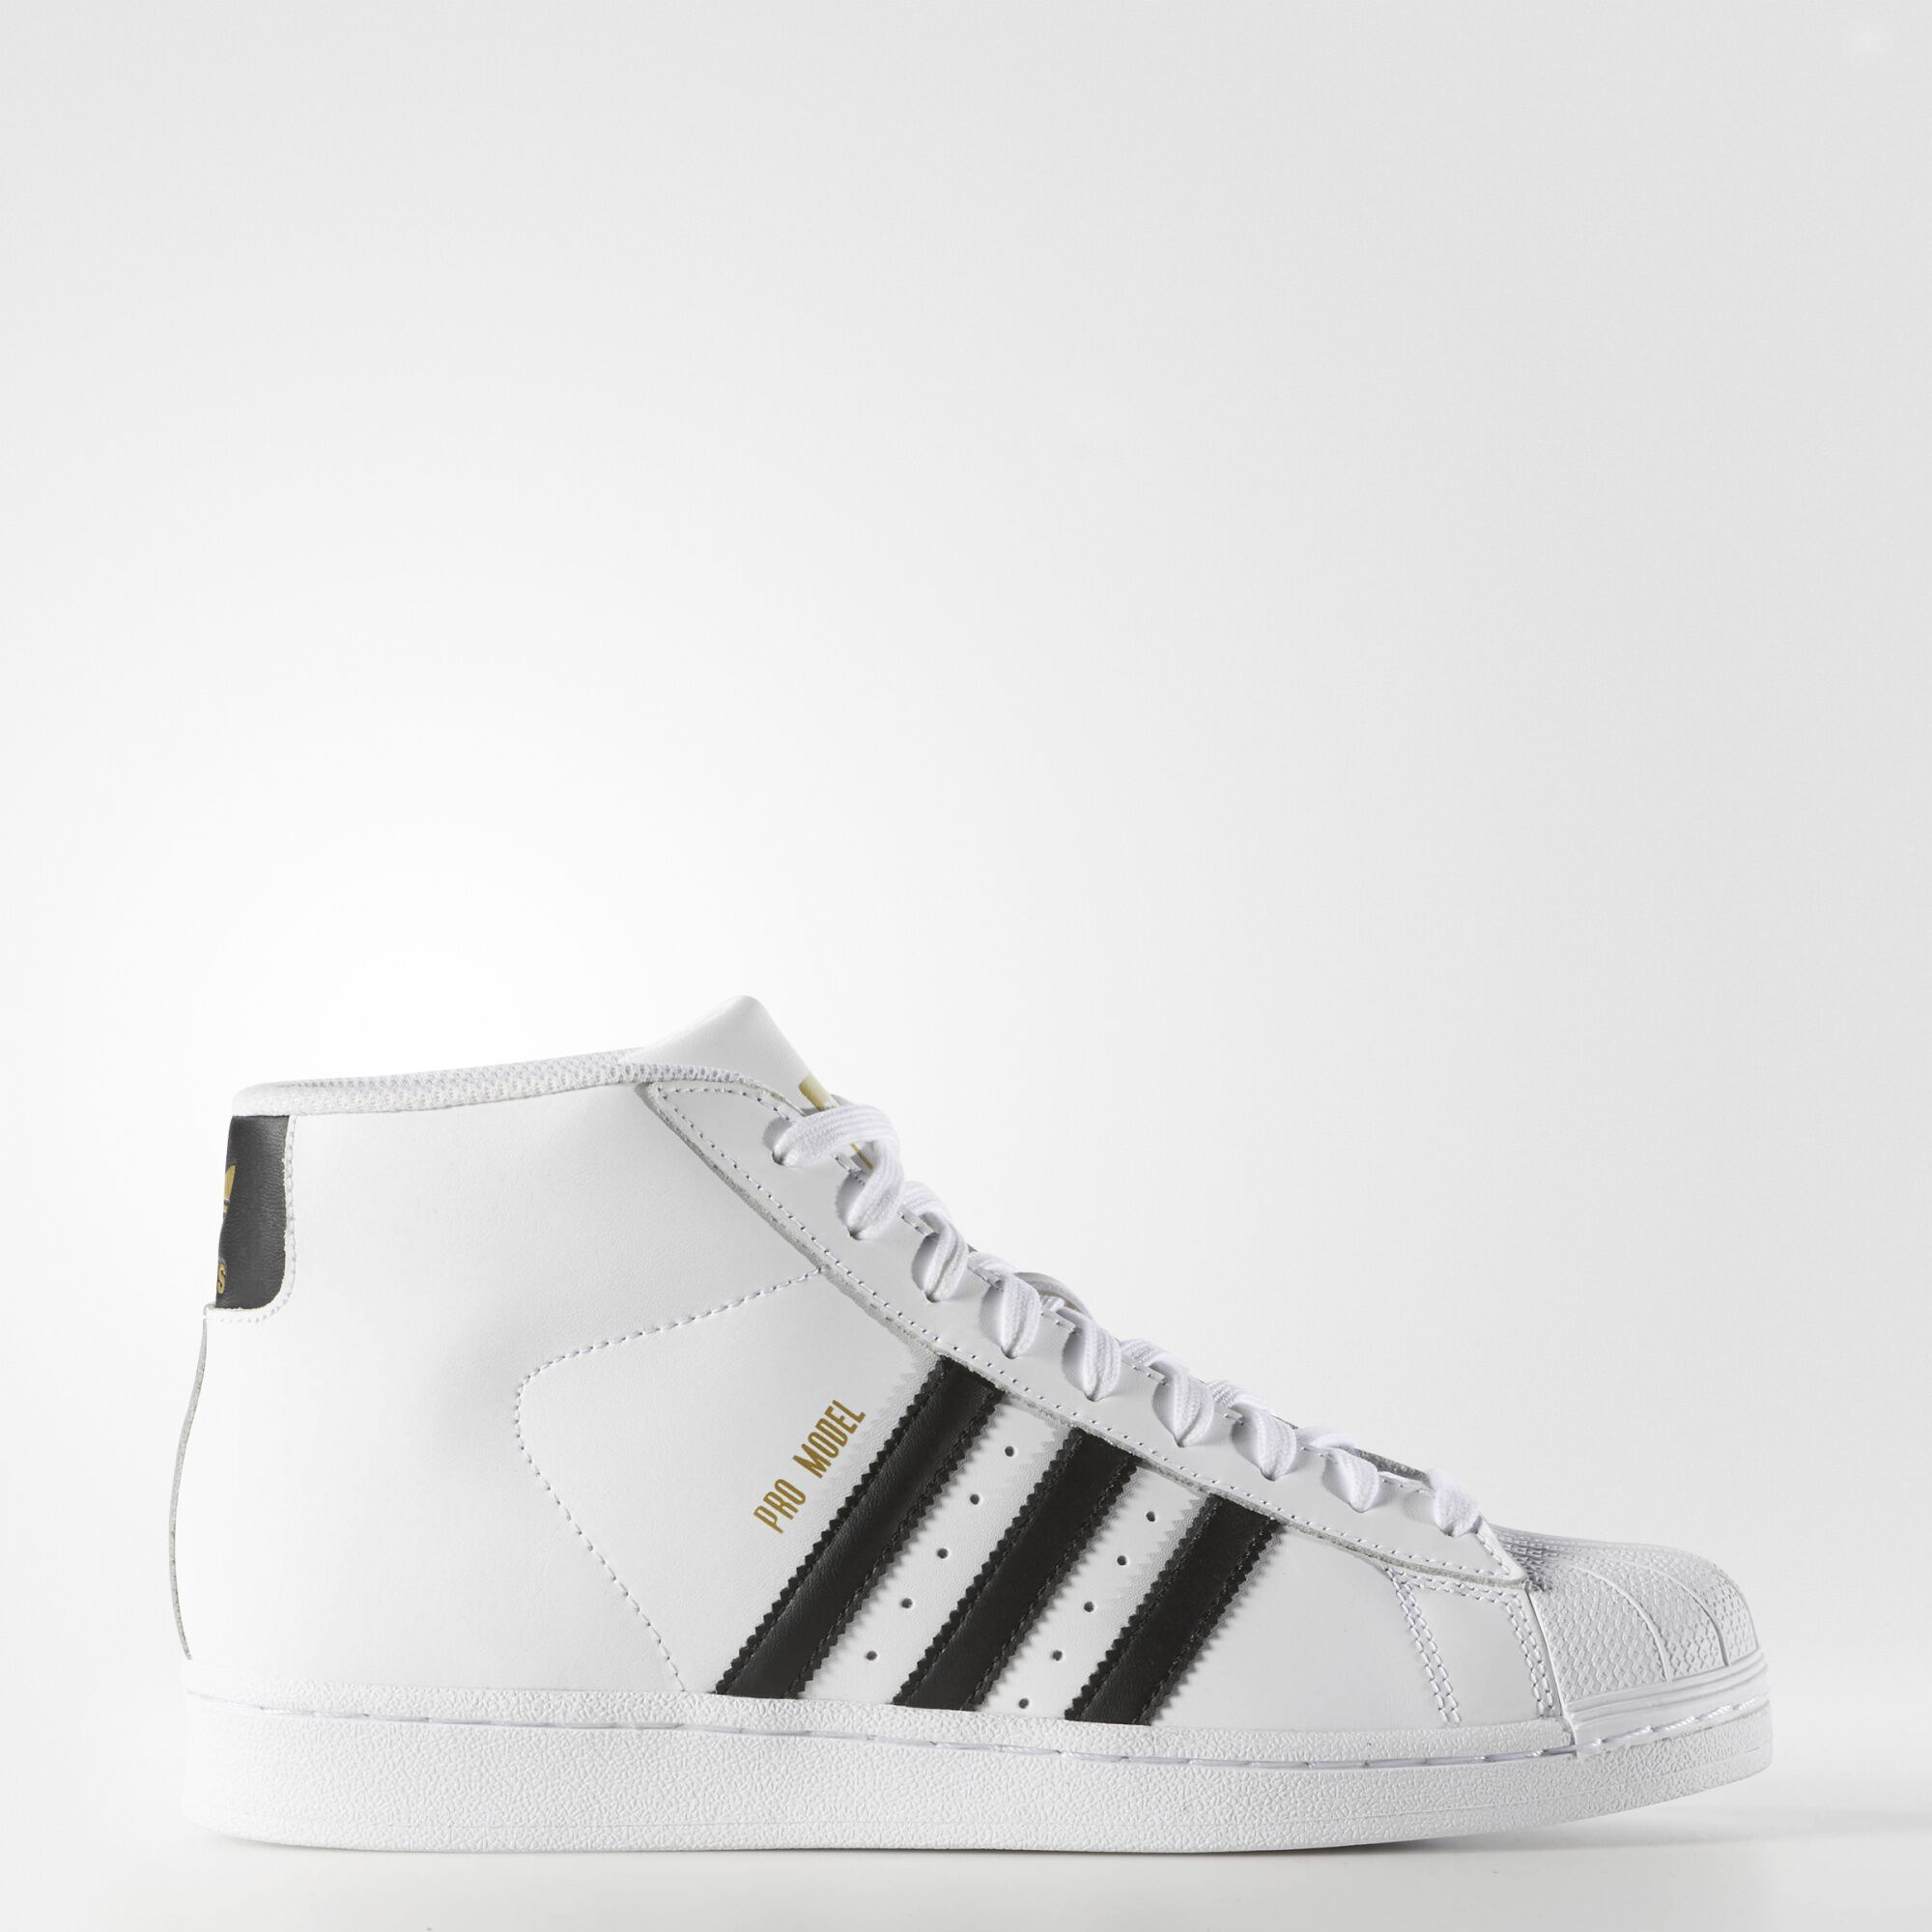 adidas shoes high tops black and white softwaretutorcouk